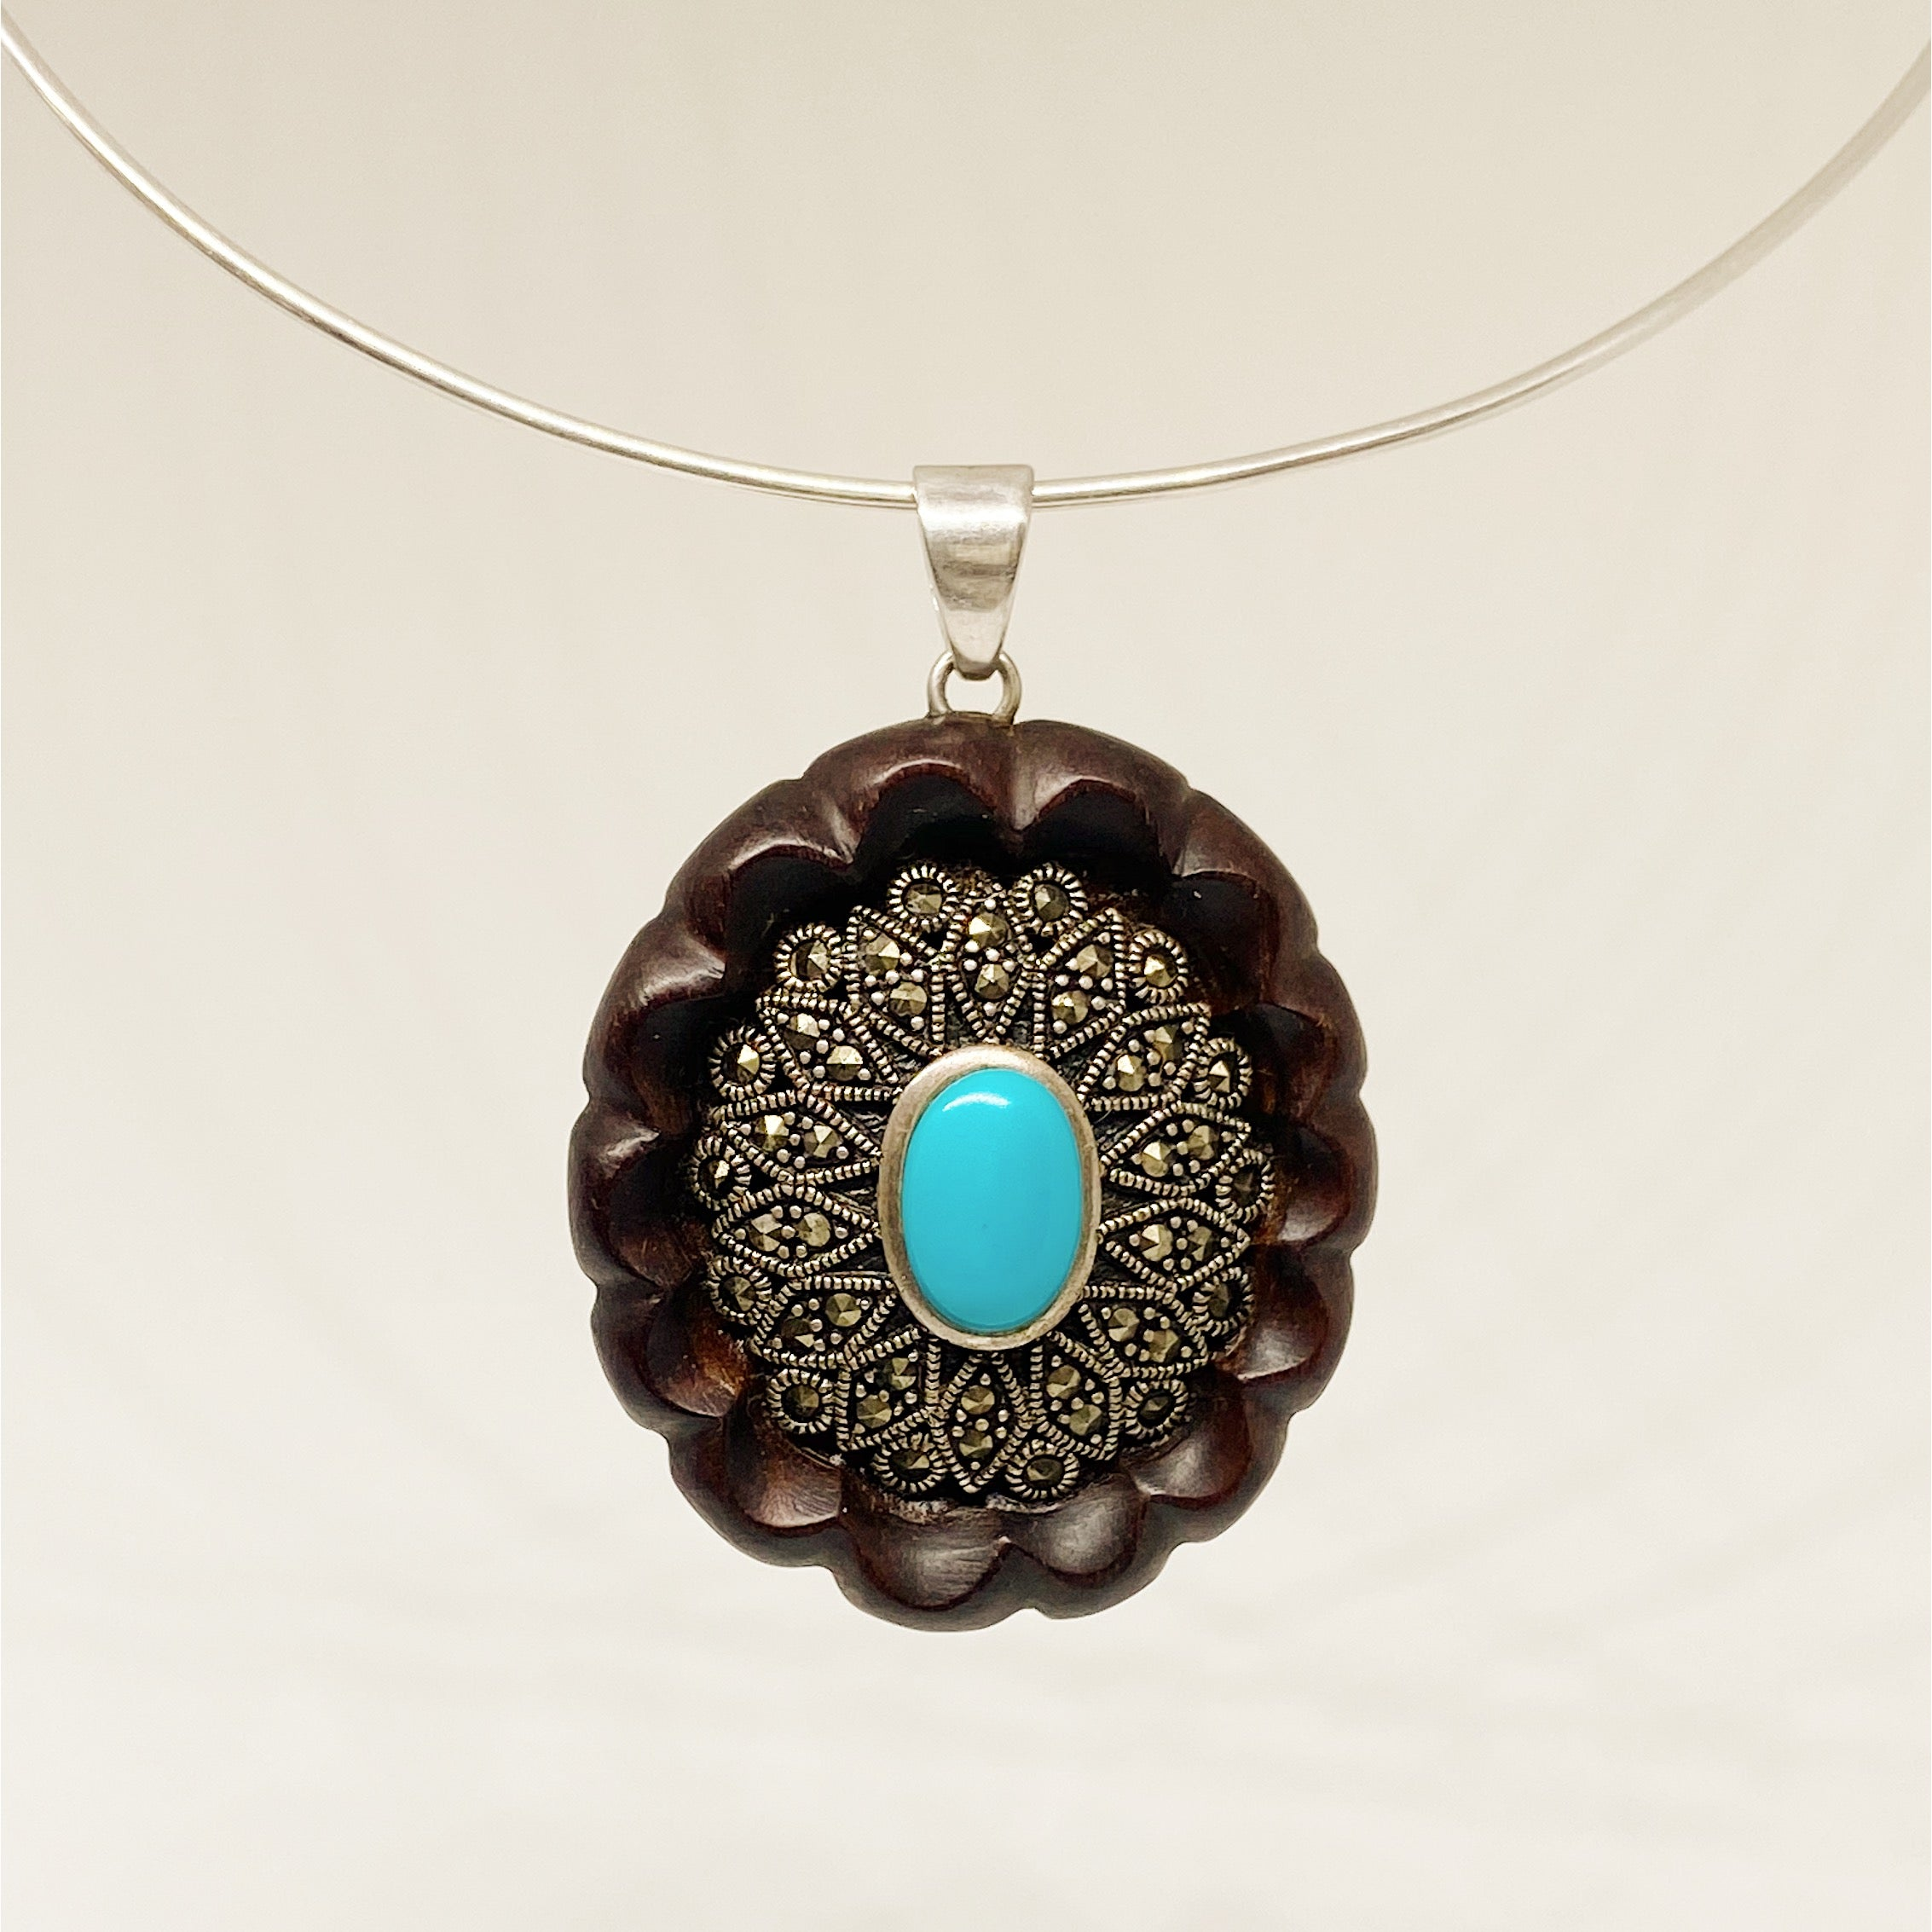 Turquoise Ornament | Wooden Necklace